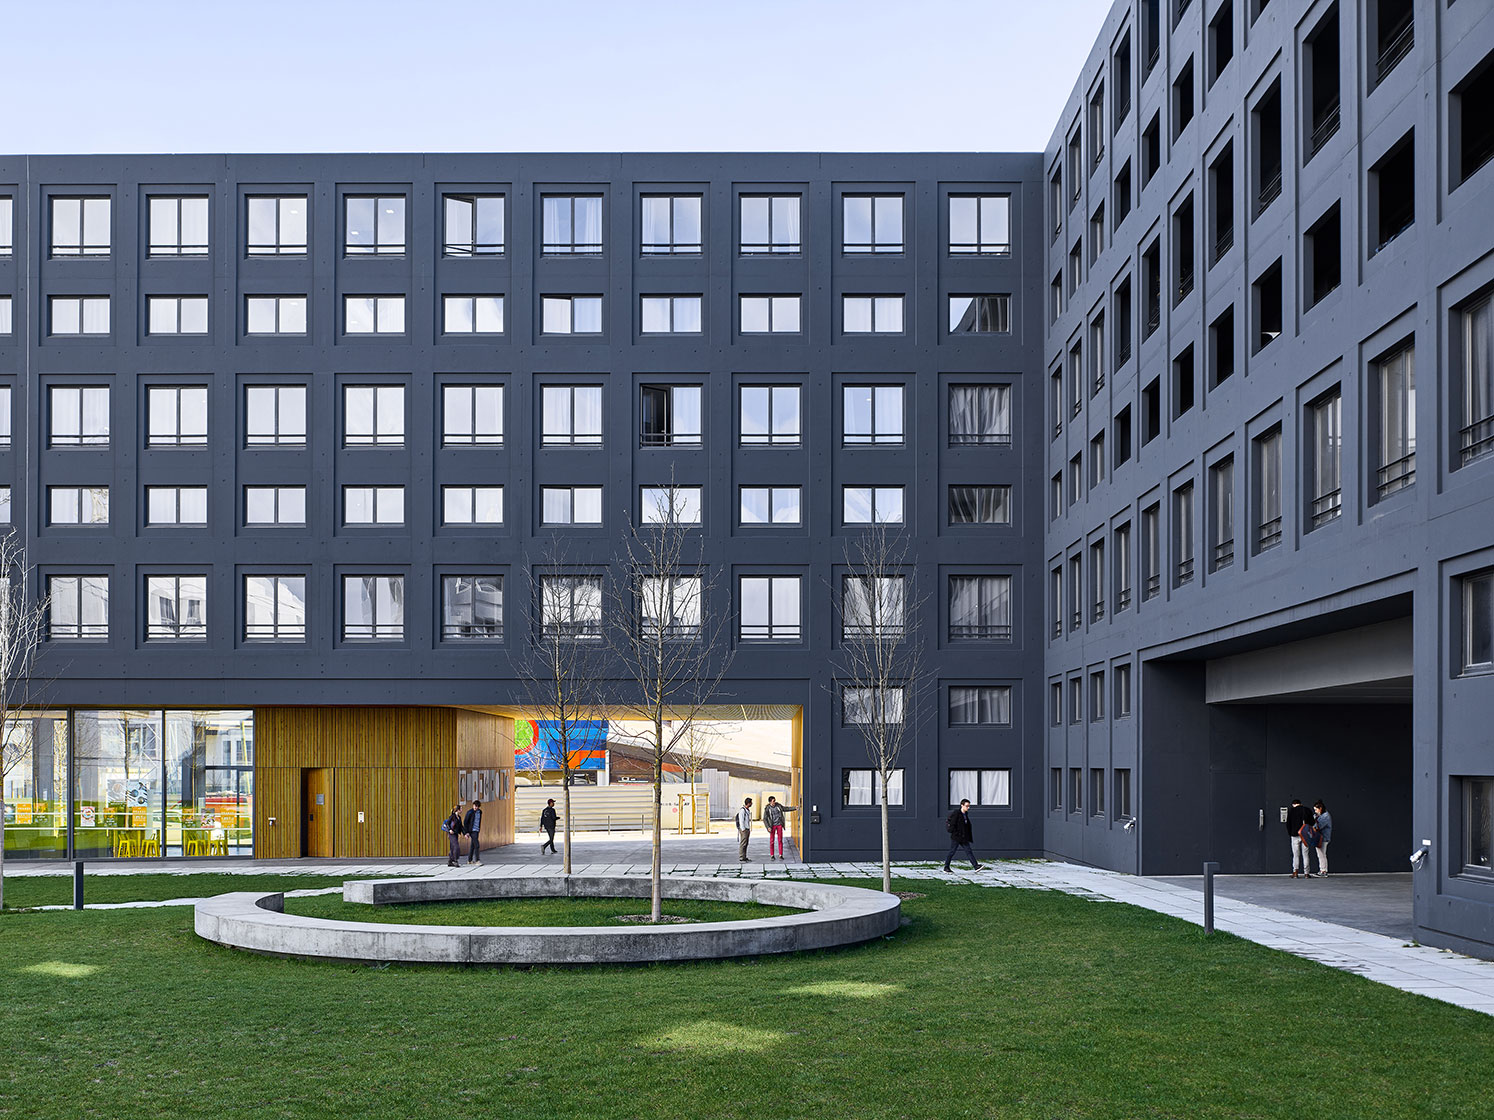 LAN, in Association with Clément Vergély and Topotek - Saclay, France